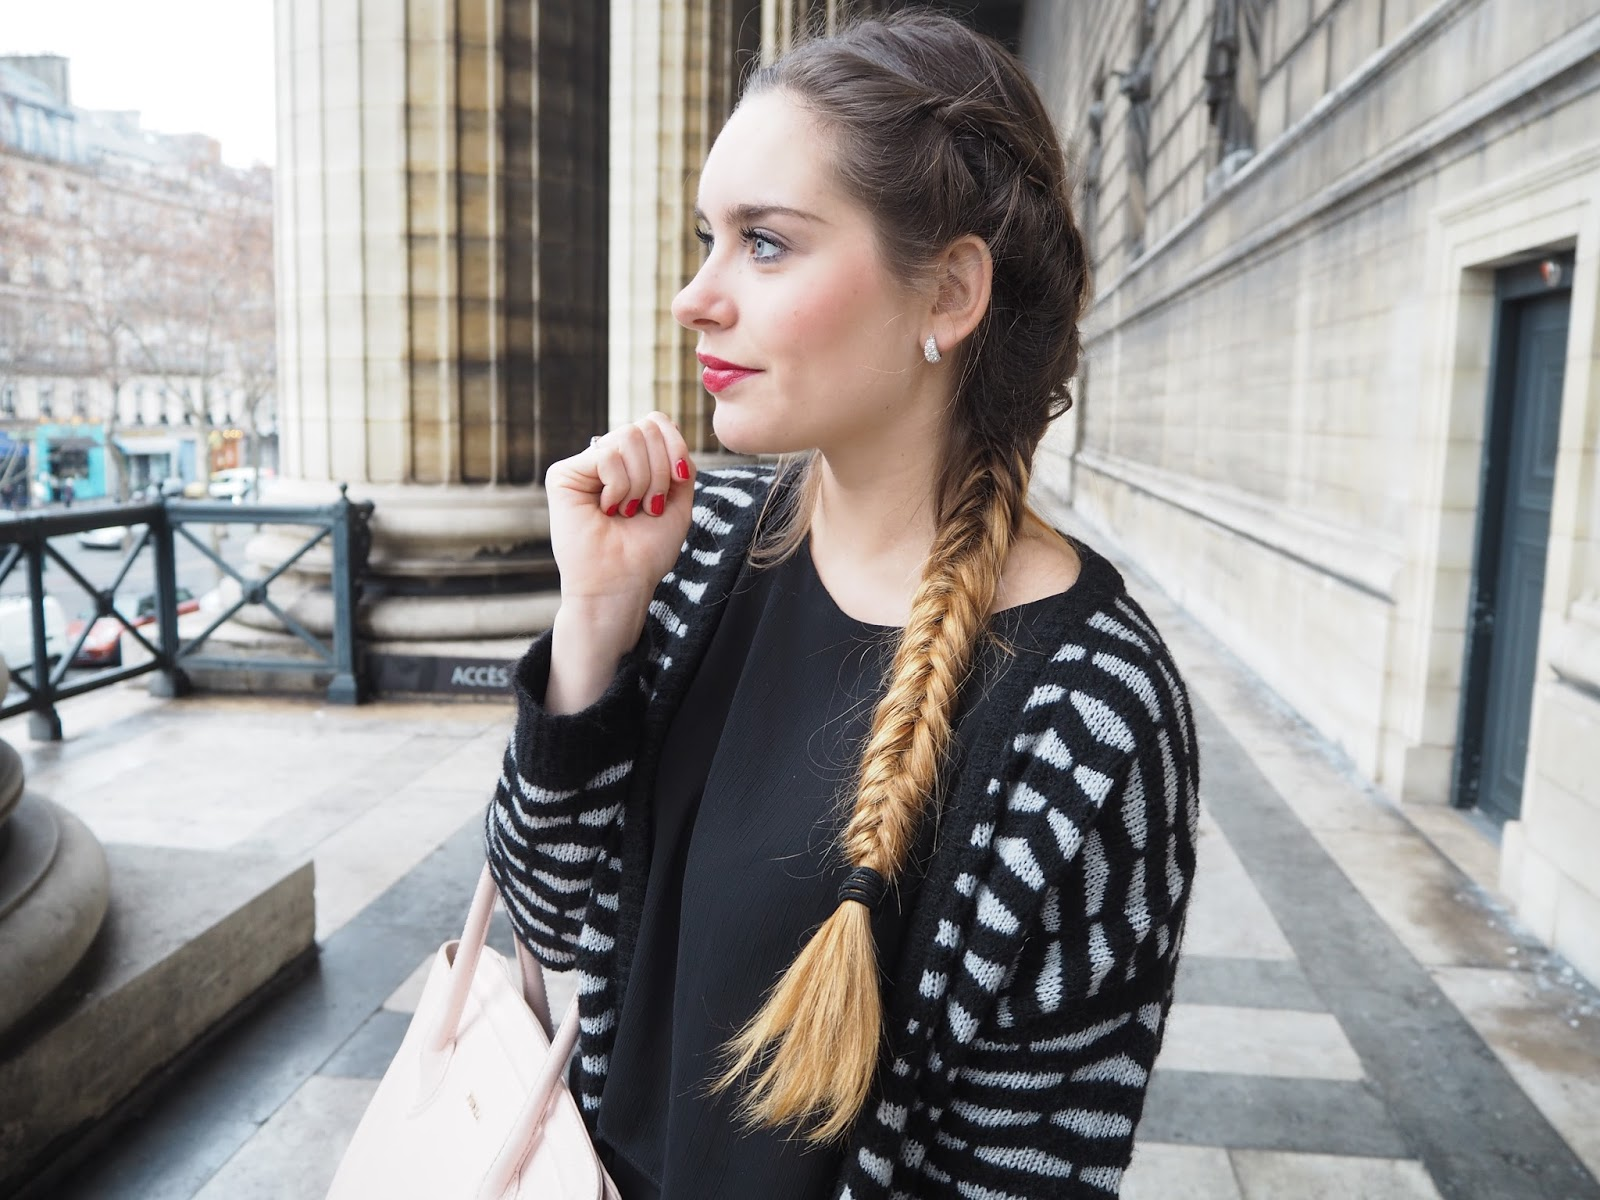 coiffure blogueuse mode